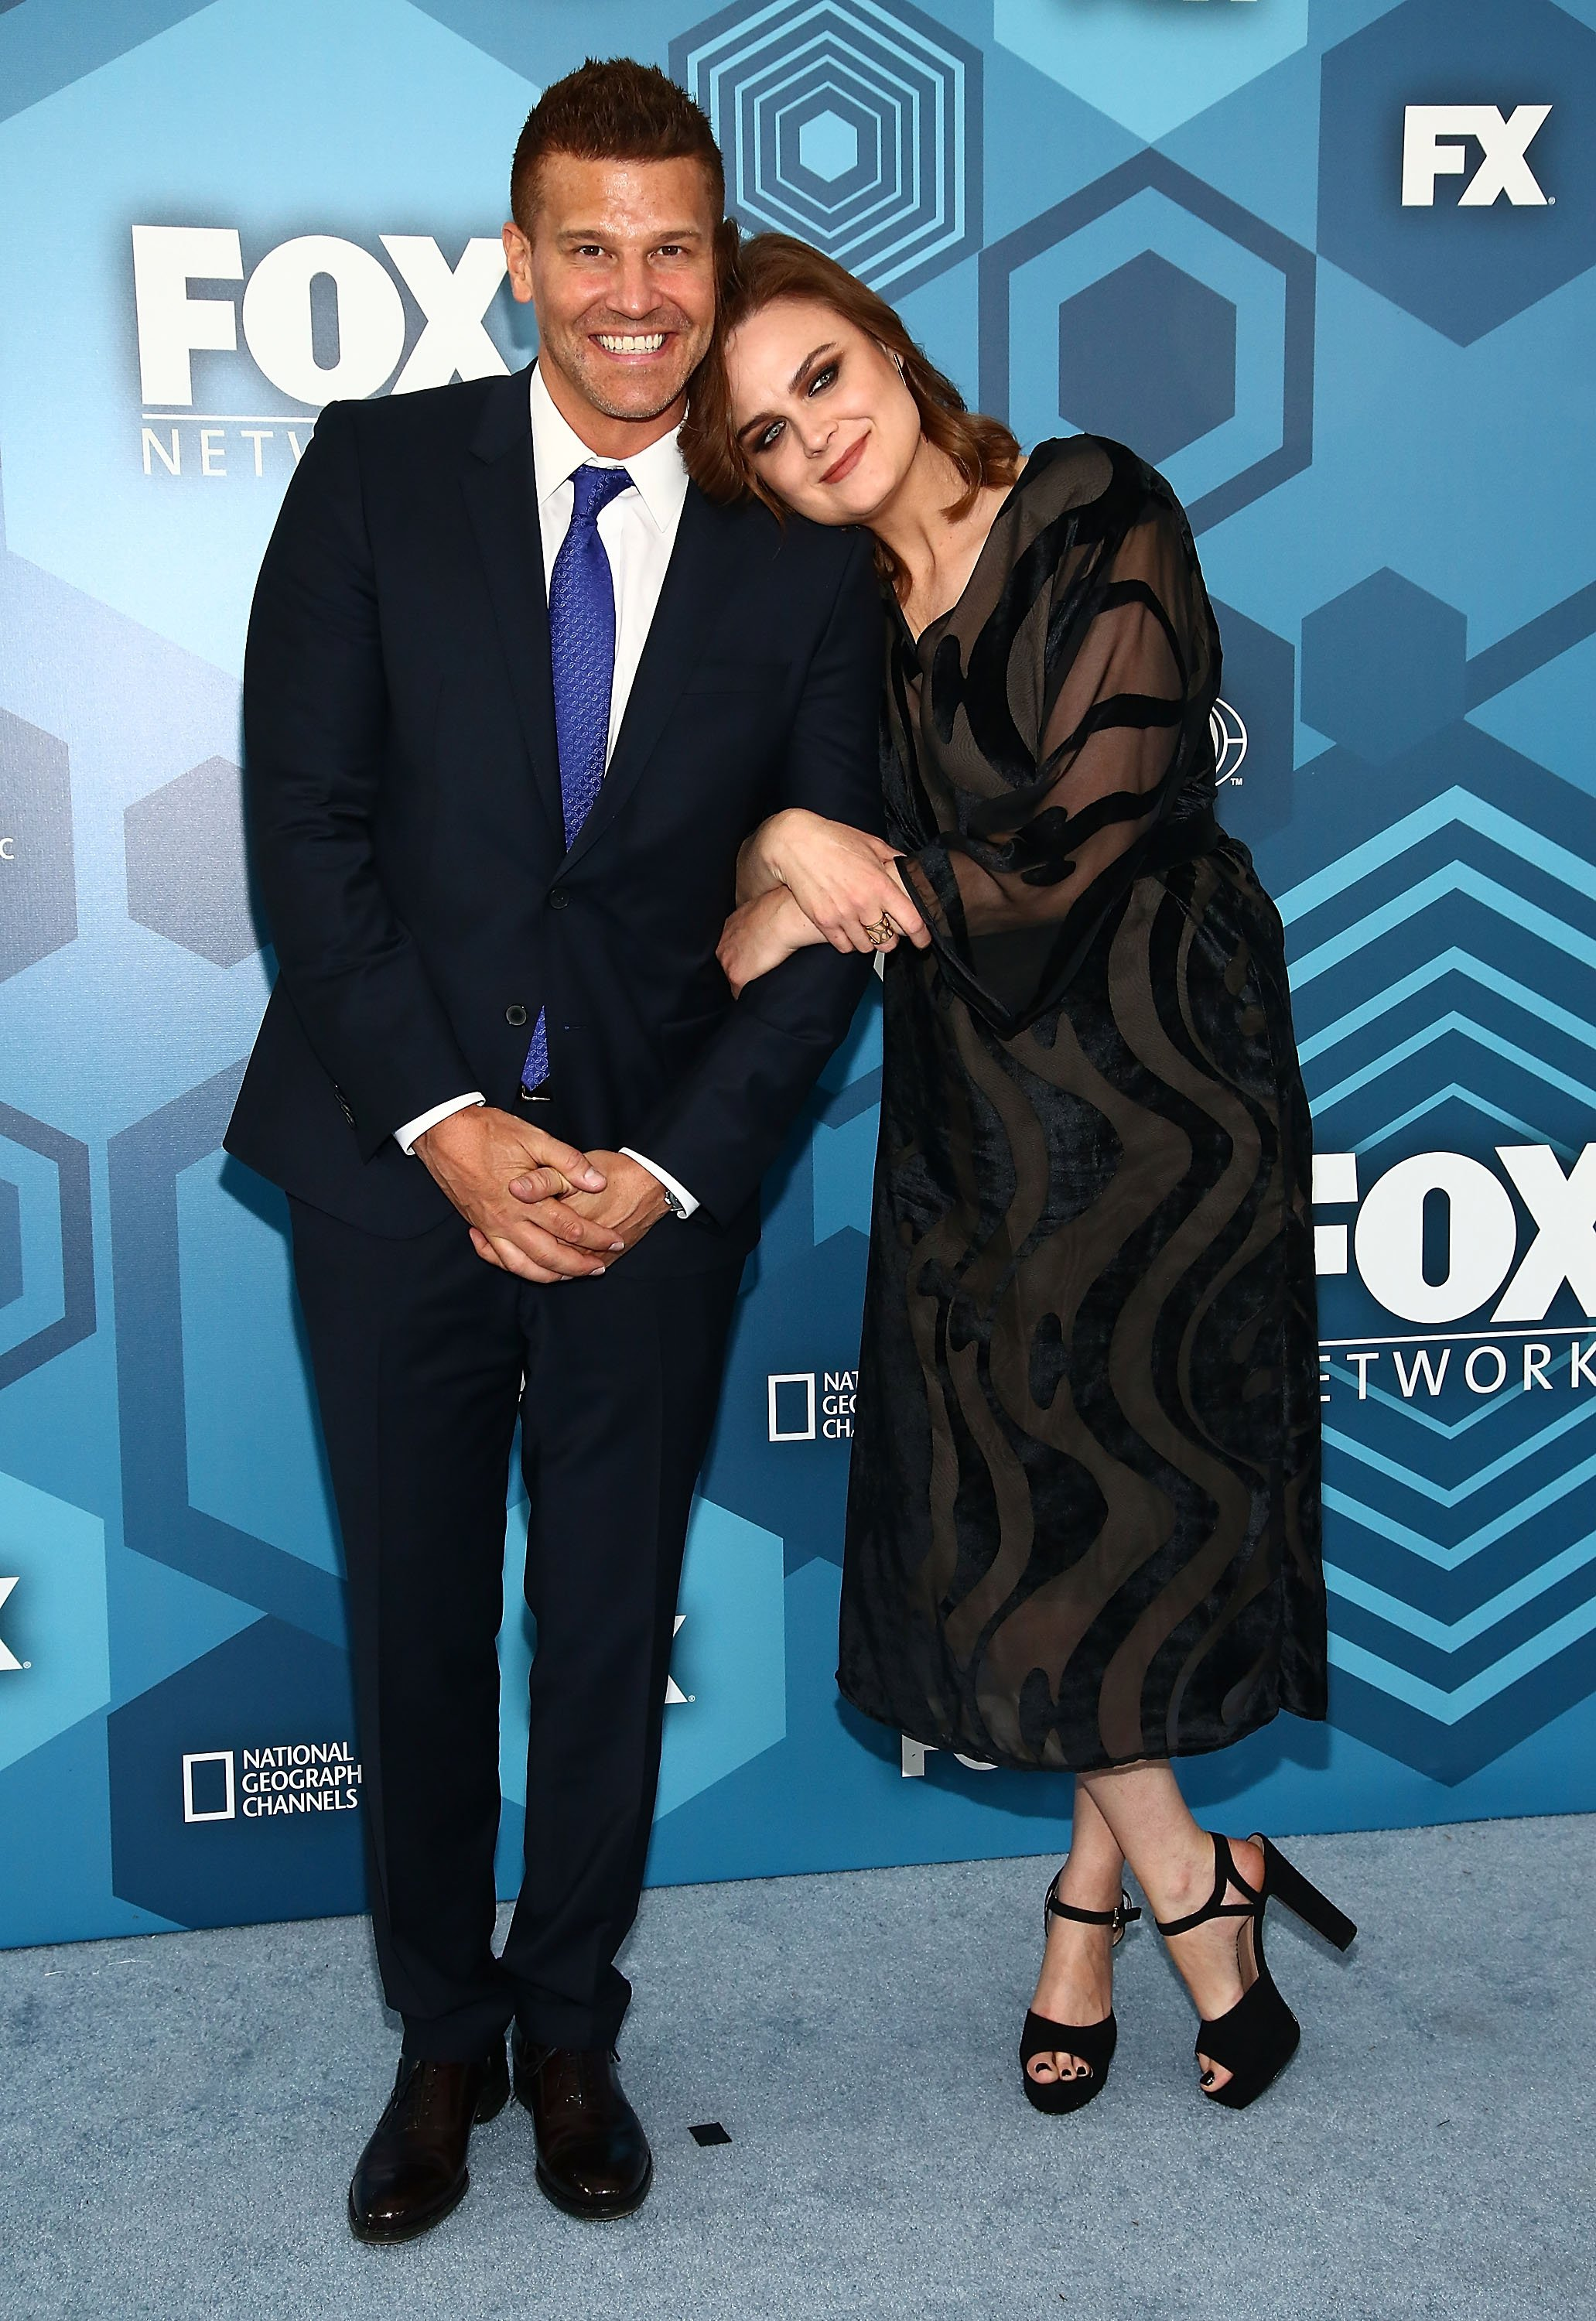 David Boreanaz and Emily Deschanel attend FOX 2016 Upfront Arrivals at Wollman Rink, Central Park on May 16, 2016, in New York City. | Source: Getty Images.